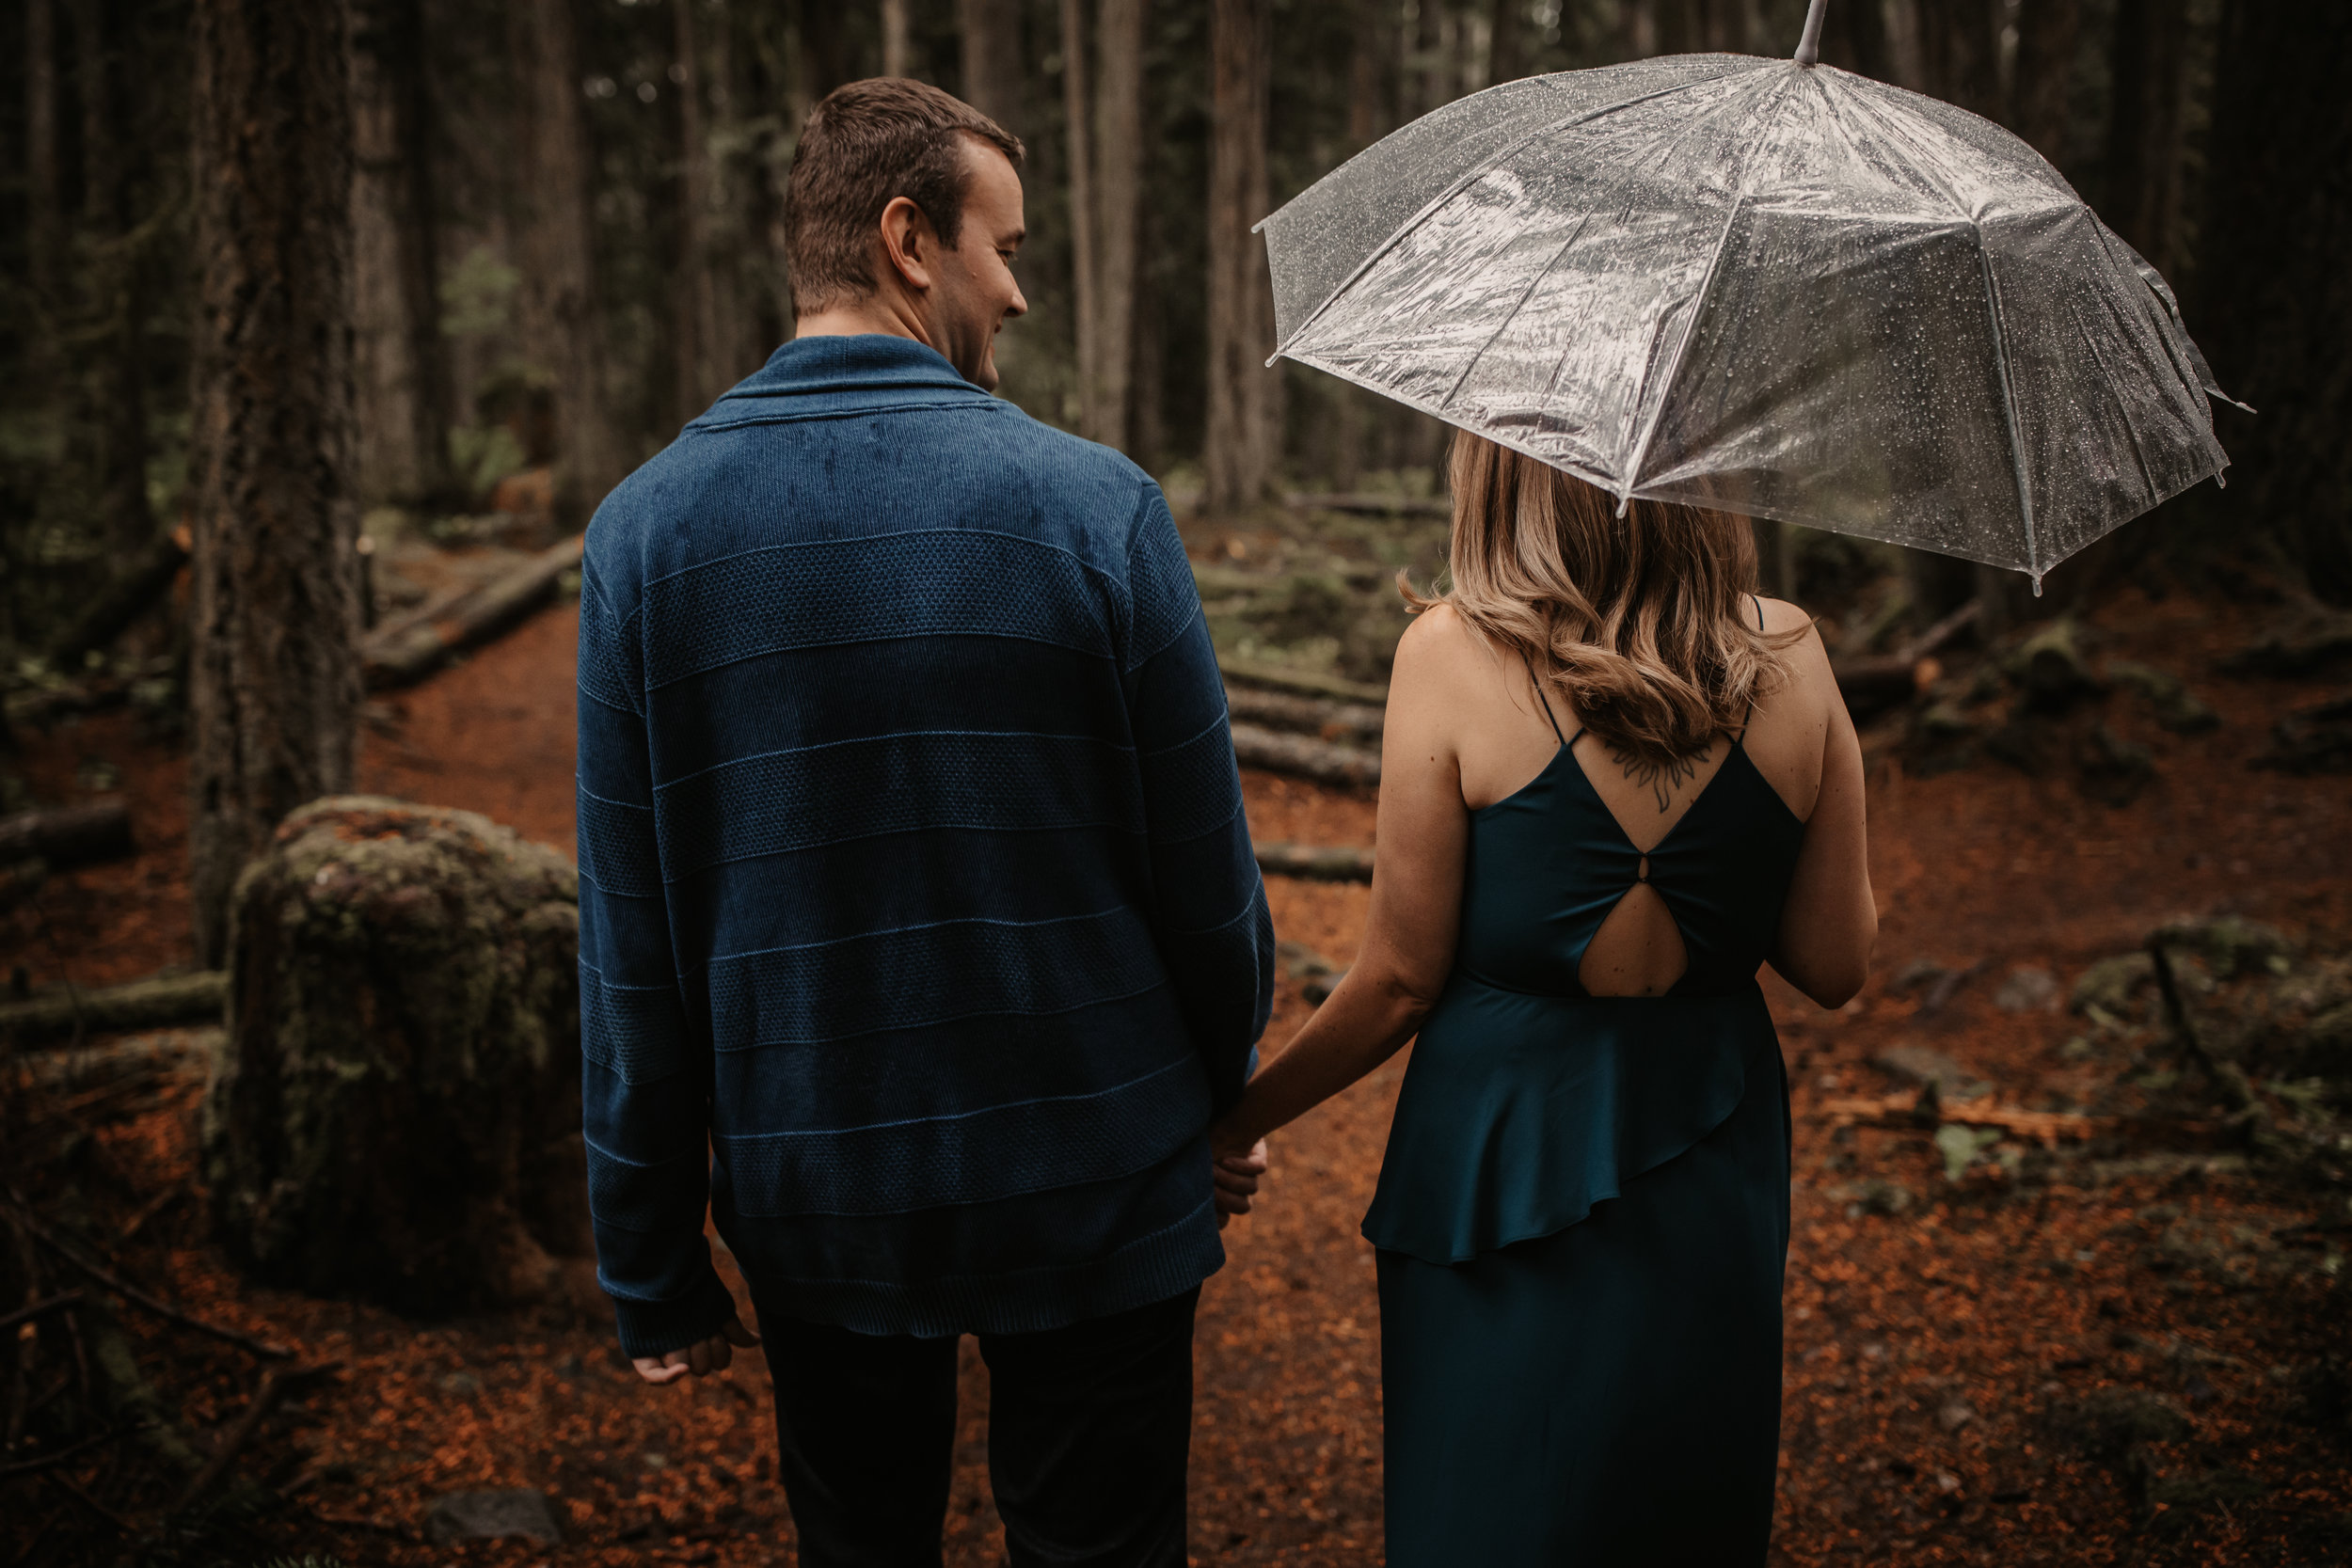 SUNSHINE COAST FOREST & BEACH ENGAGEMENT PHOTOS — Ashley & Antoine — JENNIFER PICARD PHOTOGRAPHY214.JPG